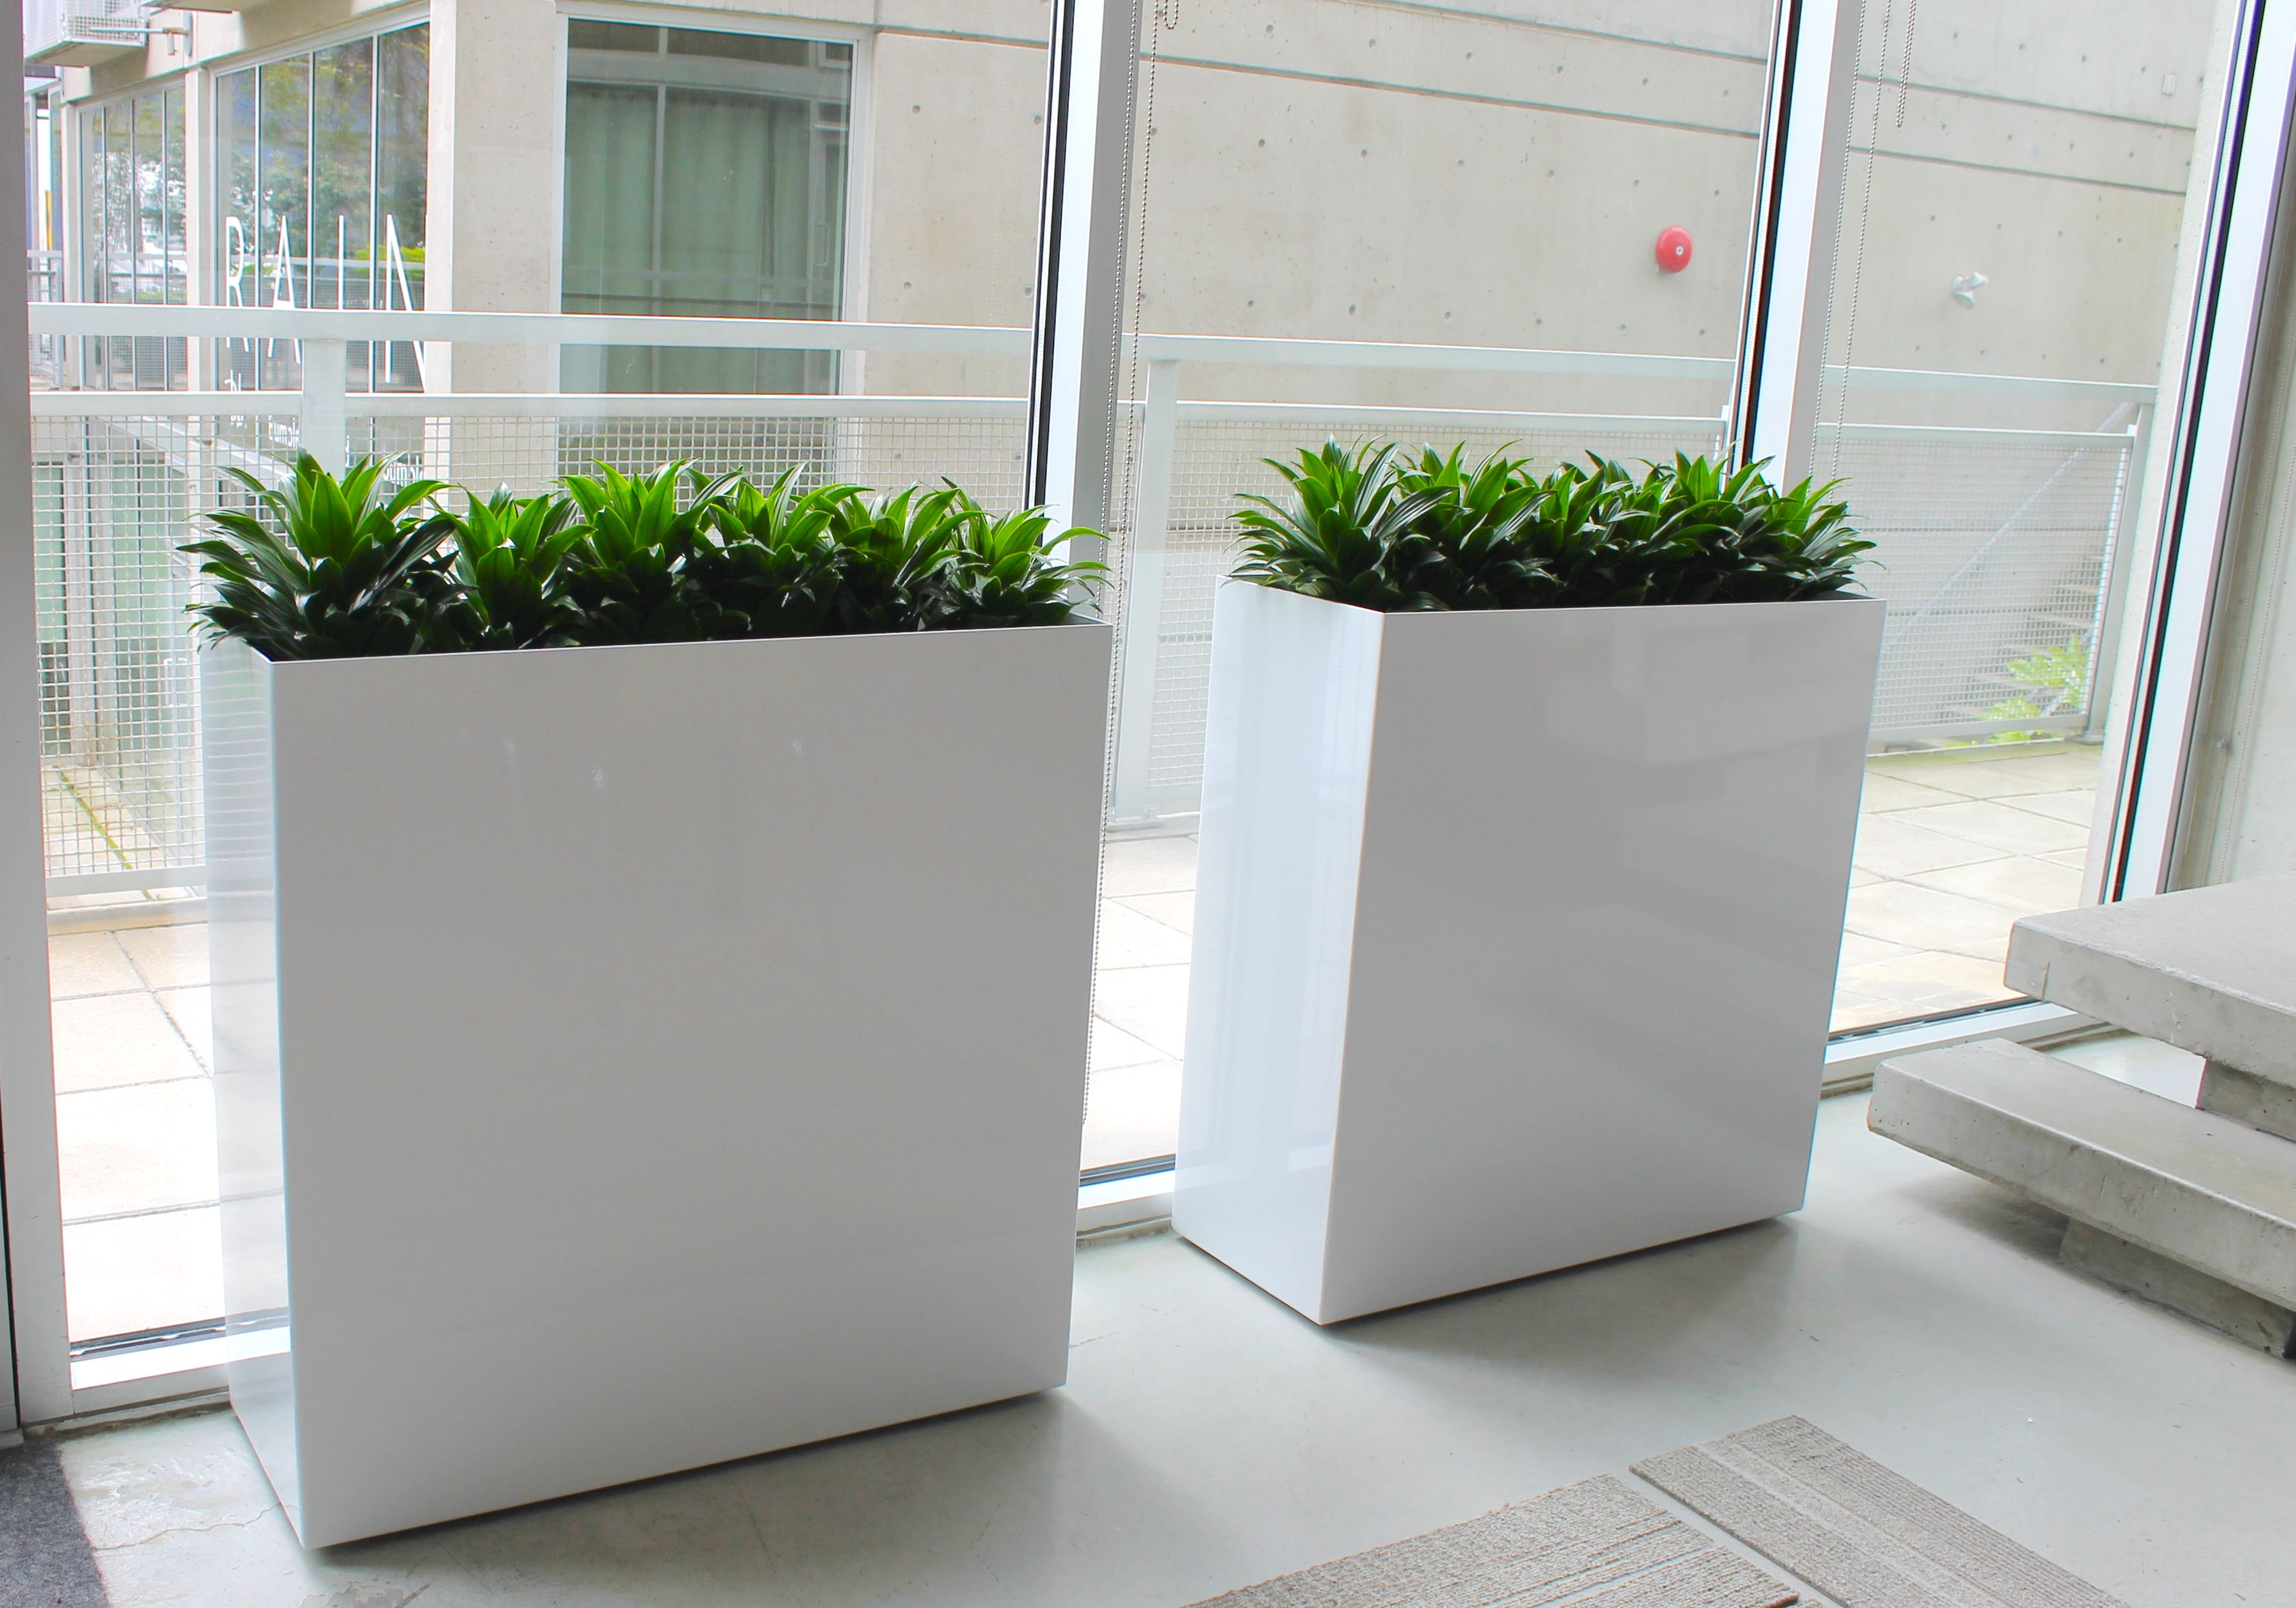 Gloss White Modern Planters Fully Equipped With Ollie Plant Sipper And Ez Fill Ter Bags A Total System